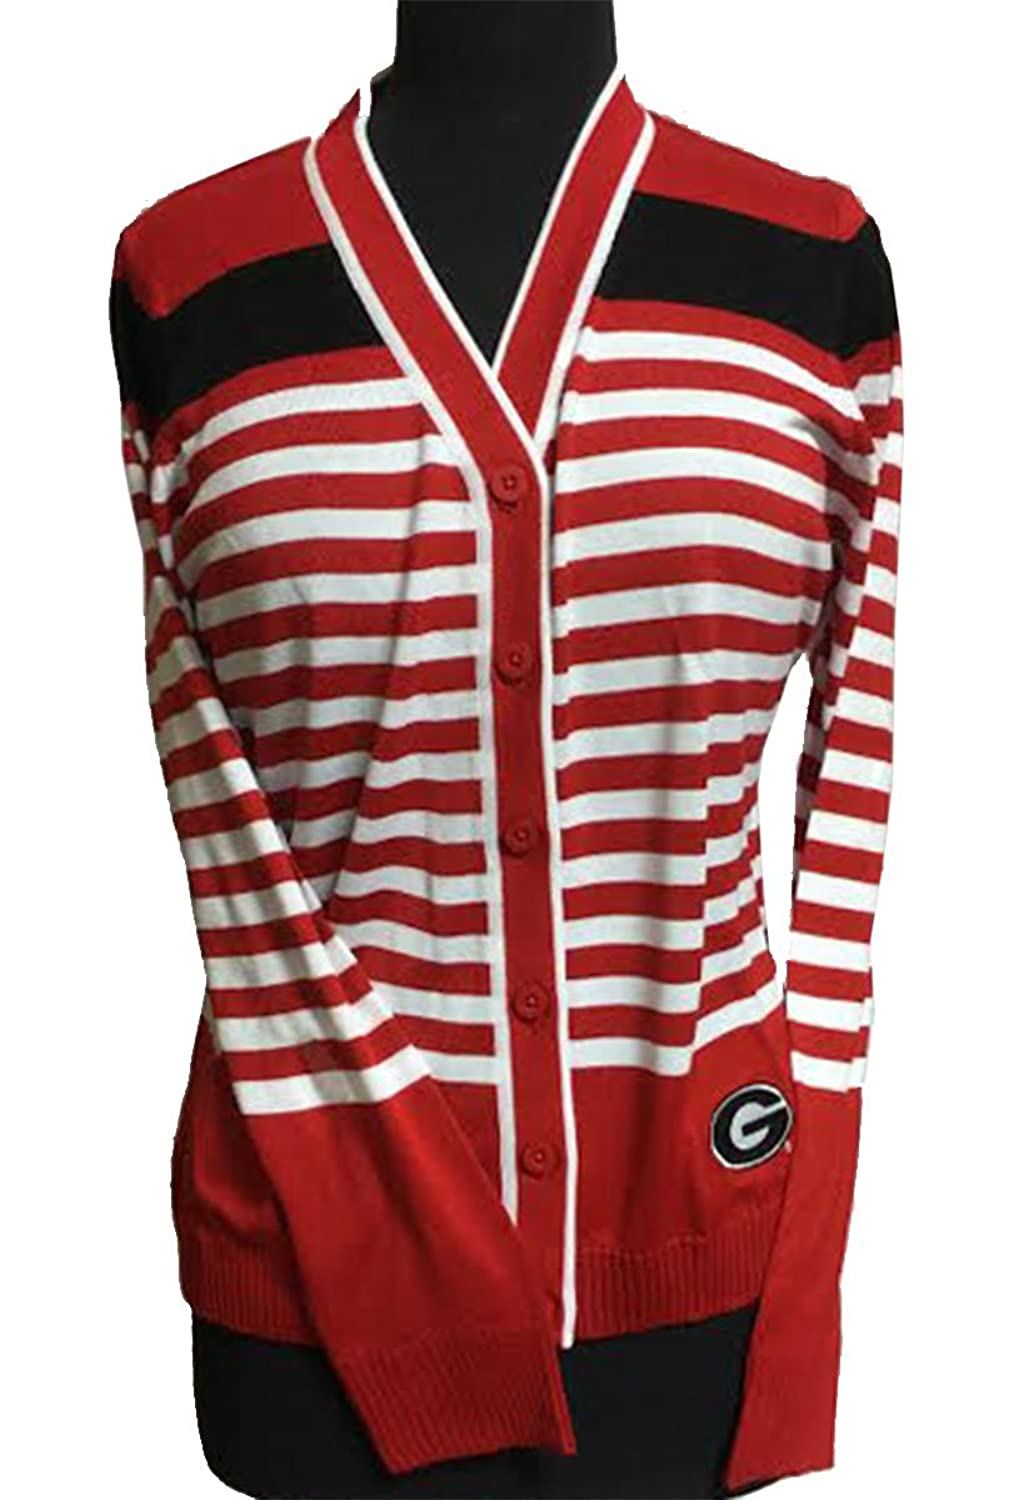 Emerson Street Women's Georgia Bulldogs Striped Cardigan